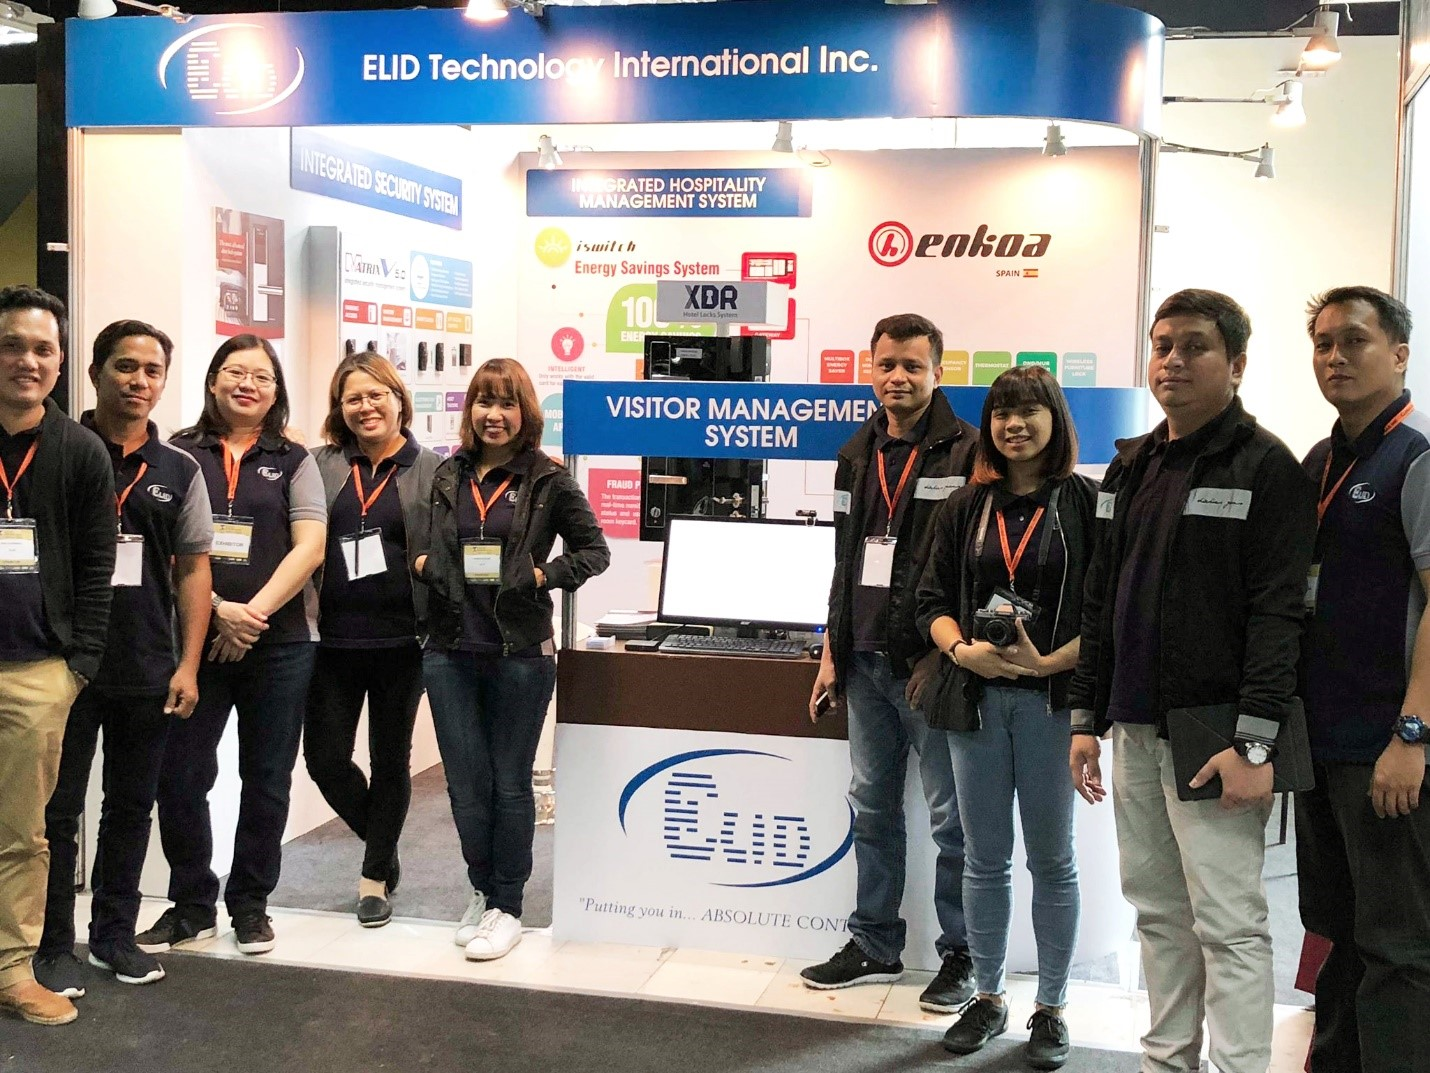 The People Behind ELID's Impactful Booth